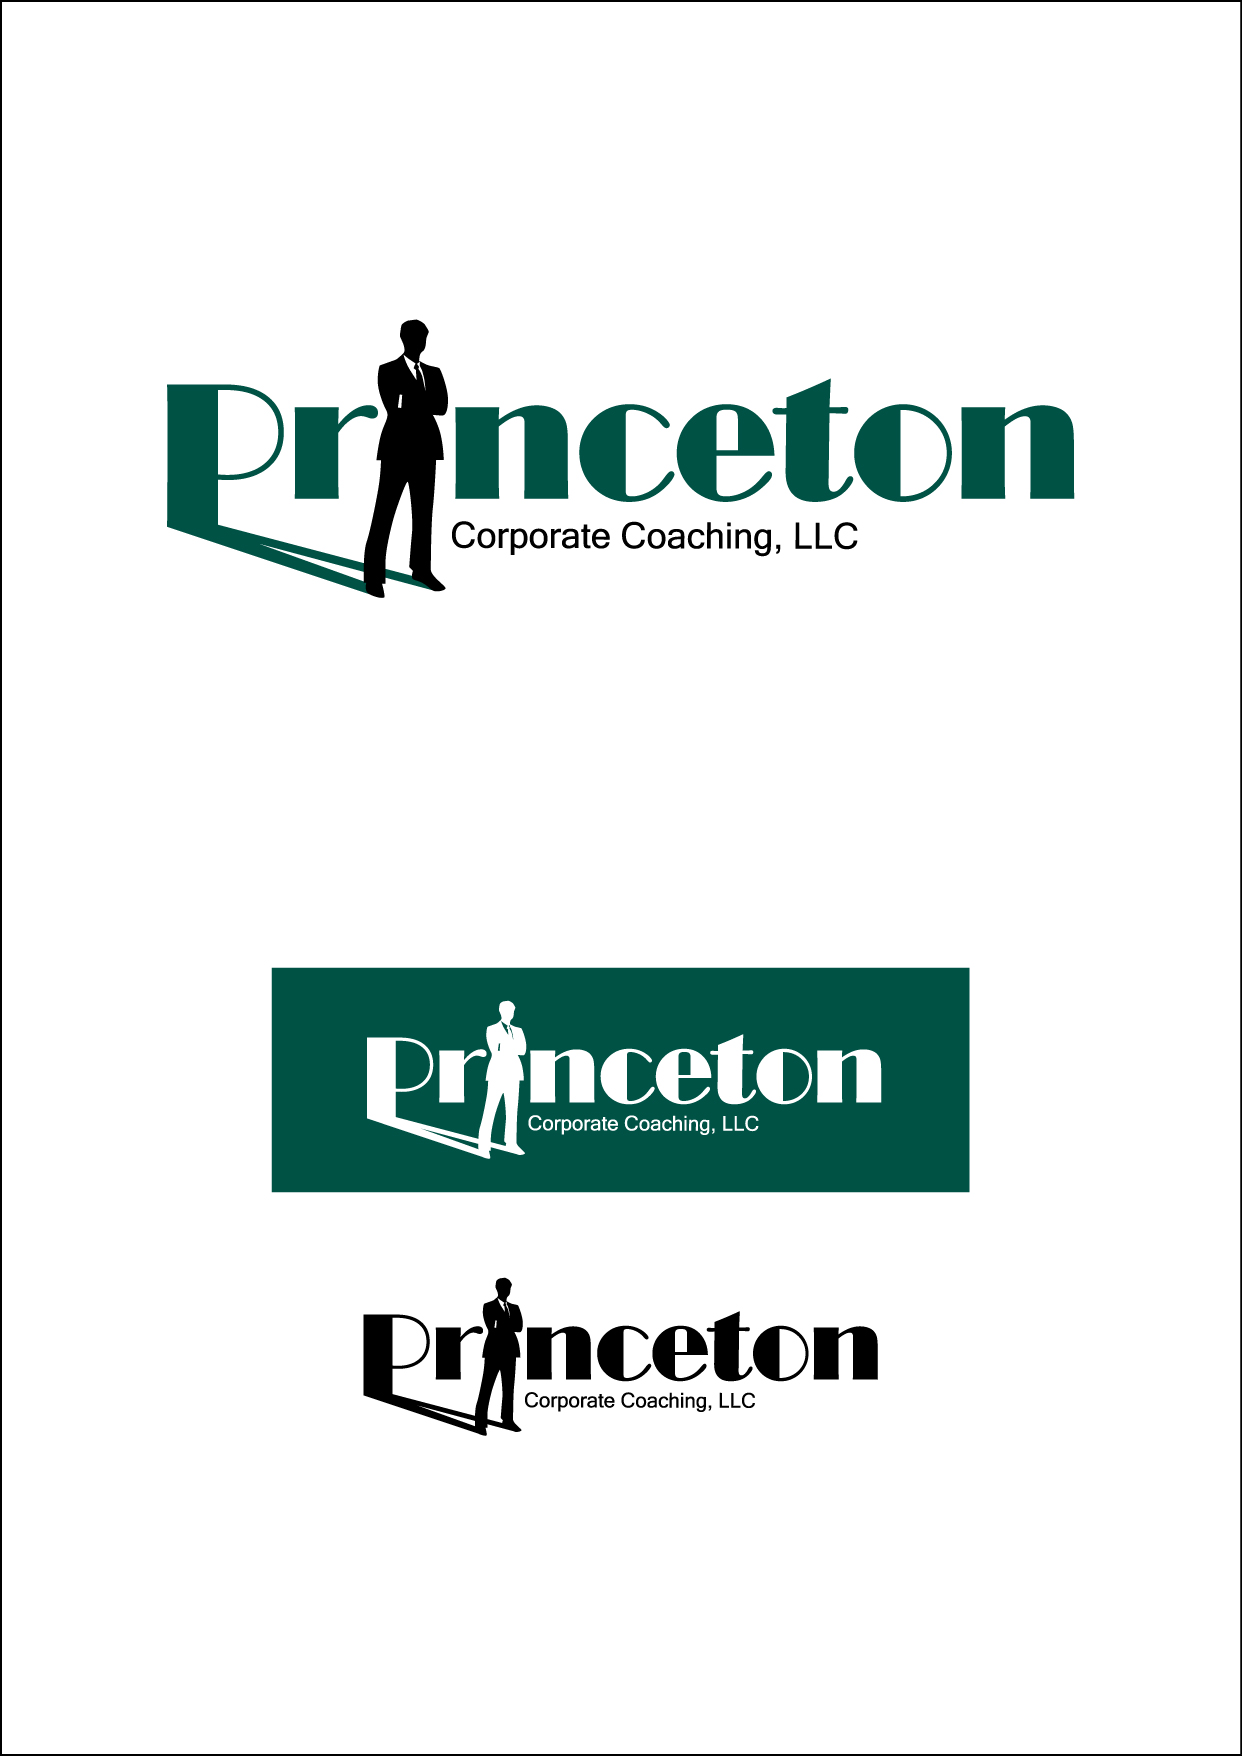 Logo Design by Wilfredo Mendoza - Entry No. 33 in the Logo Design Contest Unique Logo Design Wanted for Princeton Corporate Coaching, LLC.